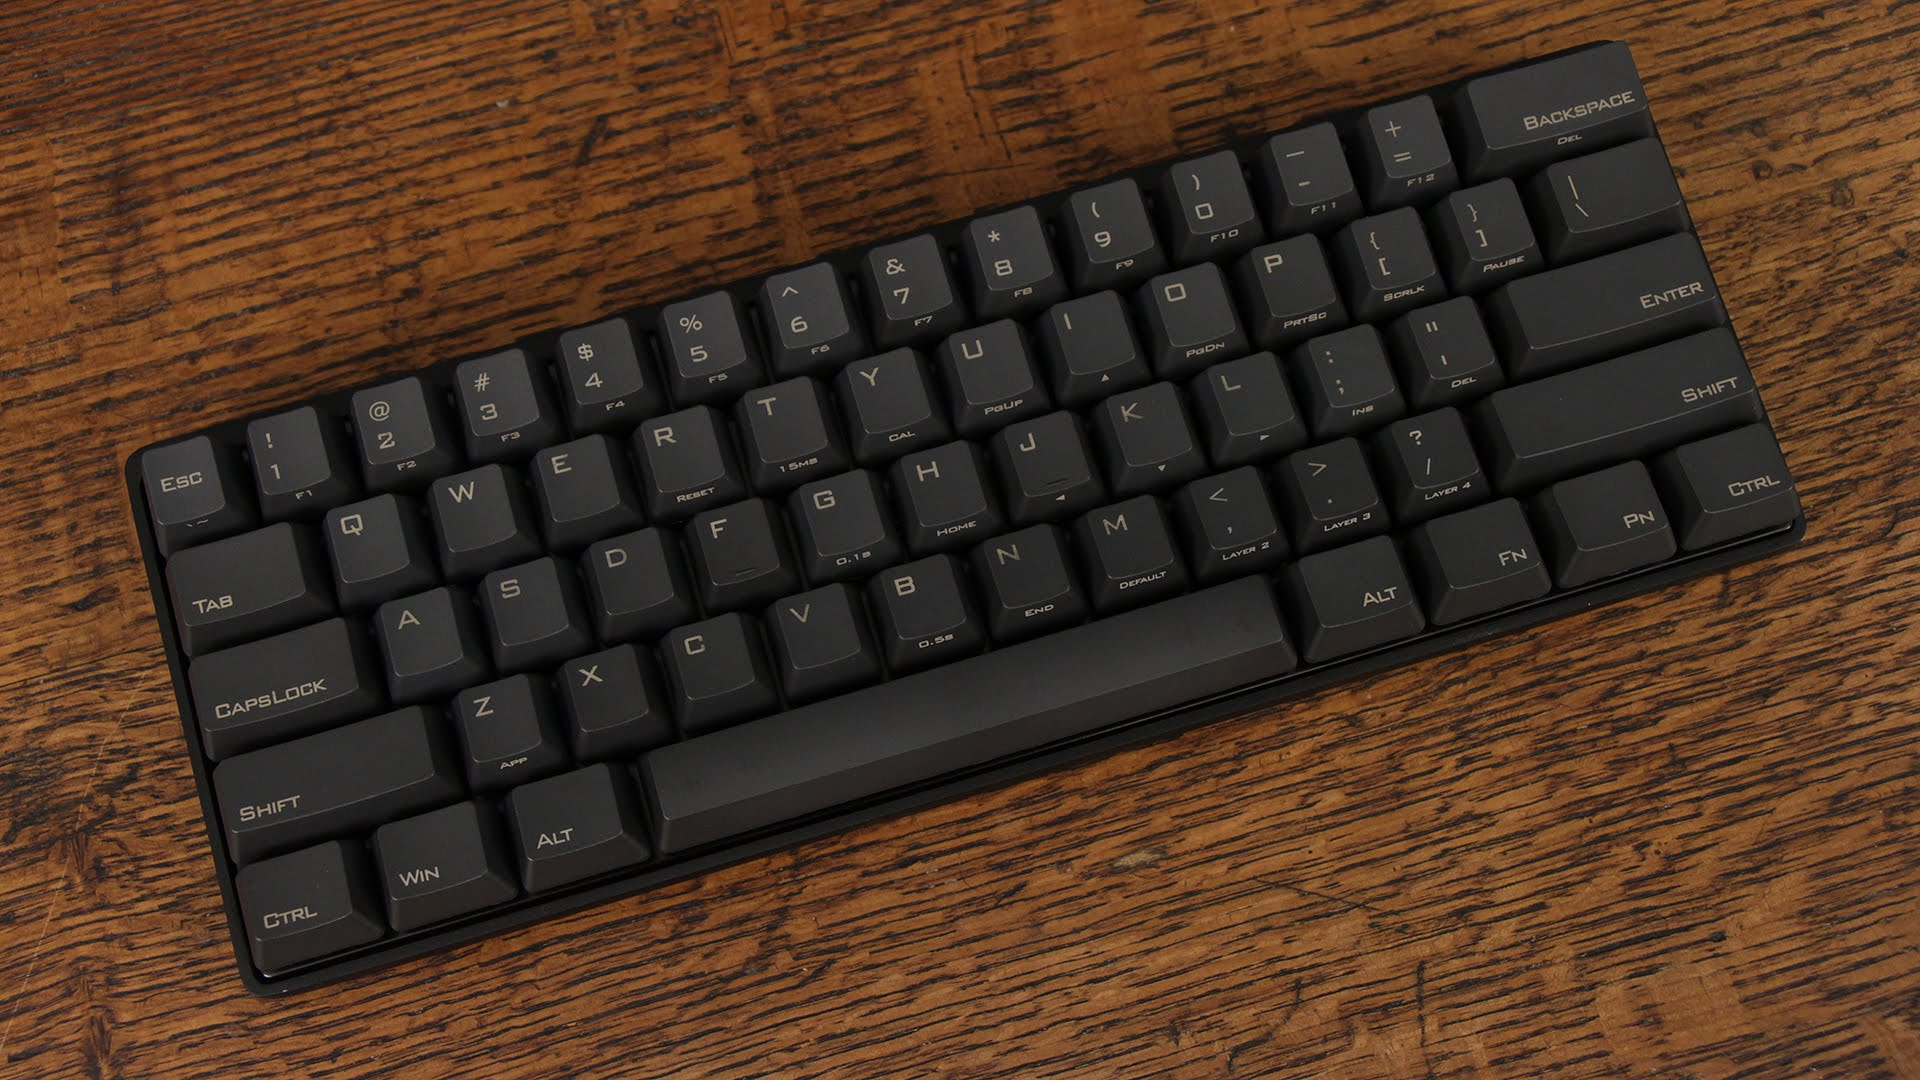 The Pok3r Keyboard